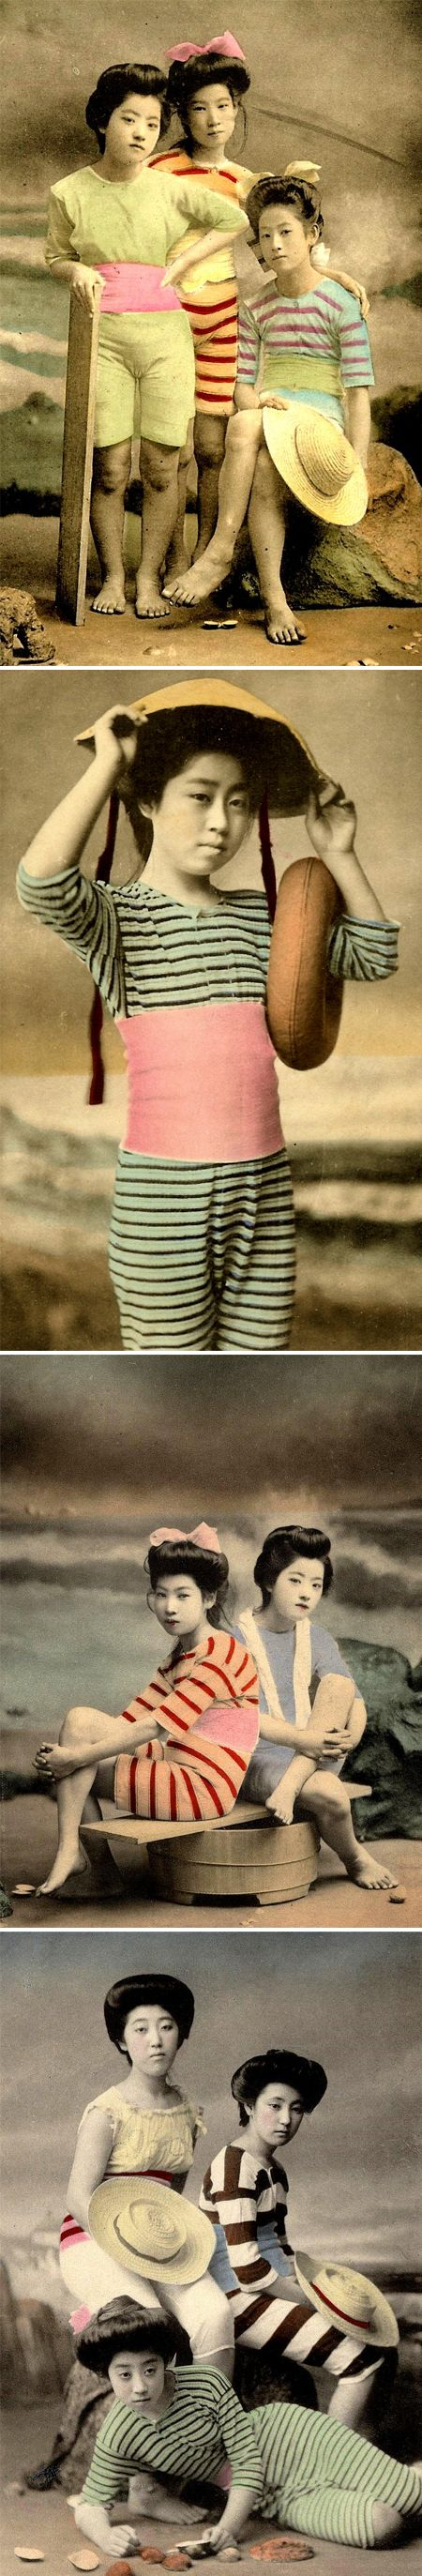 photographs from the early 1900's. During the Meiji and Taisho Eras of Old Japan, photographing Geishas in swimwear was all the rage. Stripes, hits of candy-hues, fancy up-do's…     For most of them, the identity of the photographers and models remain UNKNOWN -- a situation common to all categories of old Japanese postcards.---------The colors!